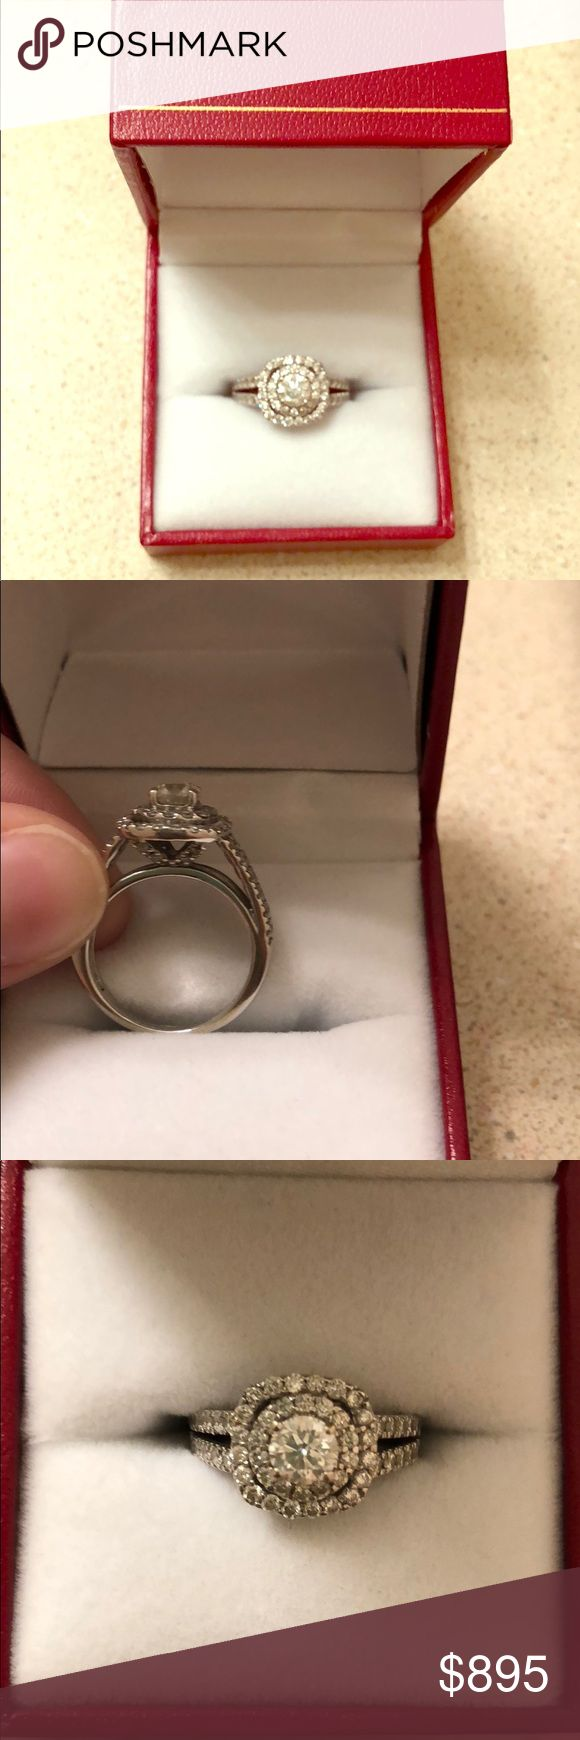 Diamond engagement ring Engagement ring from sales. Have original receipt showing what I paid. As is. Size 4.5 I believe or 4.75 but you can take it and get it resizes. Huge discount just want gone. Middle stone is .50 carat and total ring is 1.5 carats. 14ct gold with diamonds. Major steal for the price. Zales Jewelry Rings #zalesengagementrings